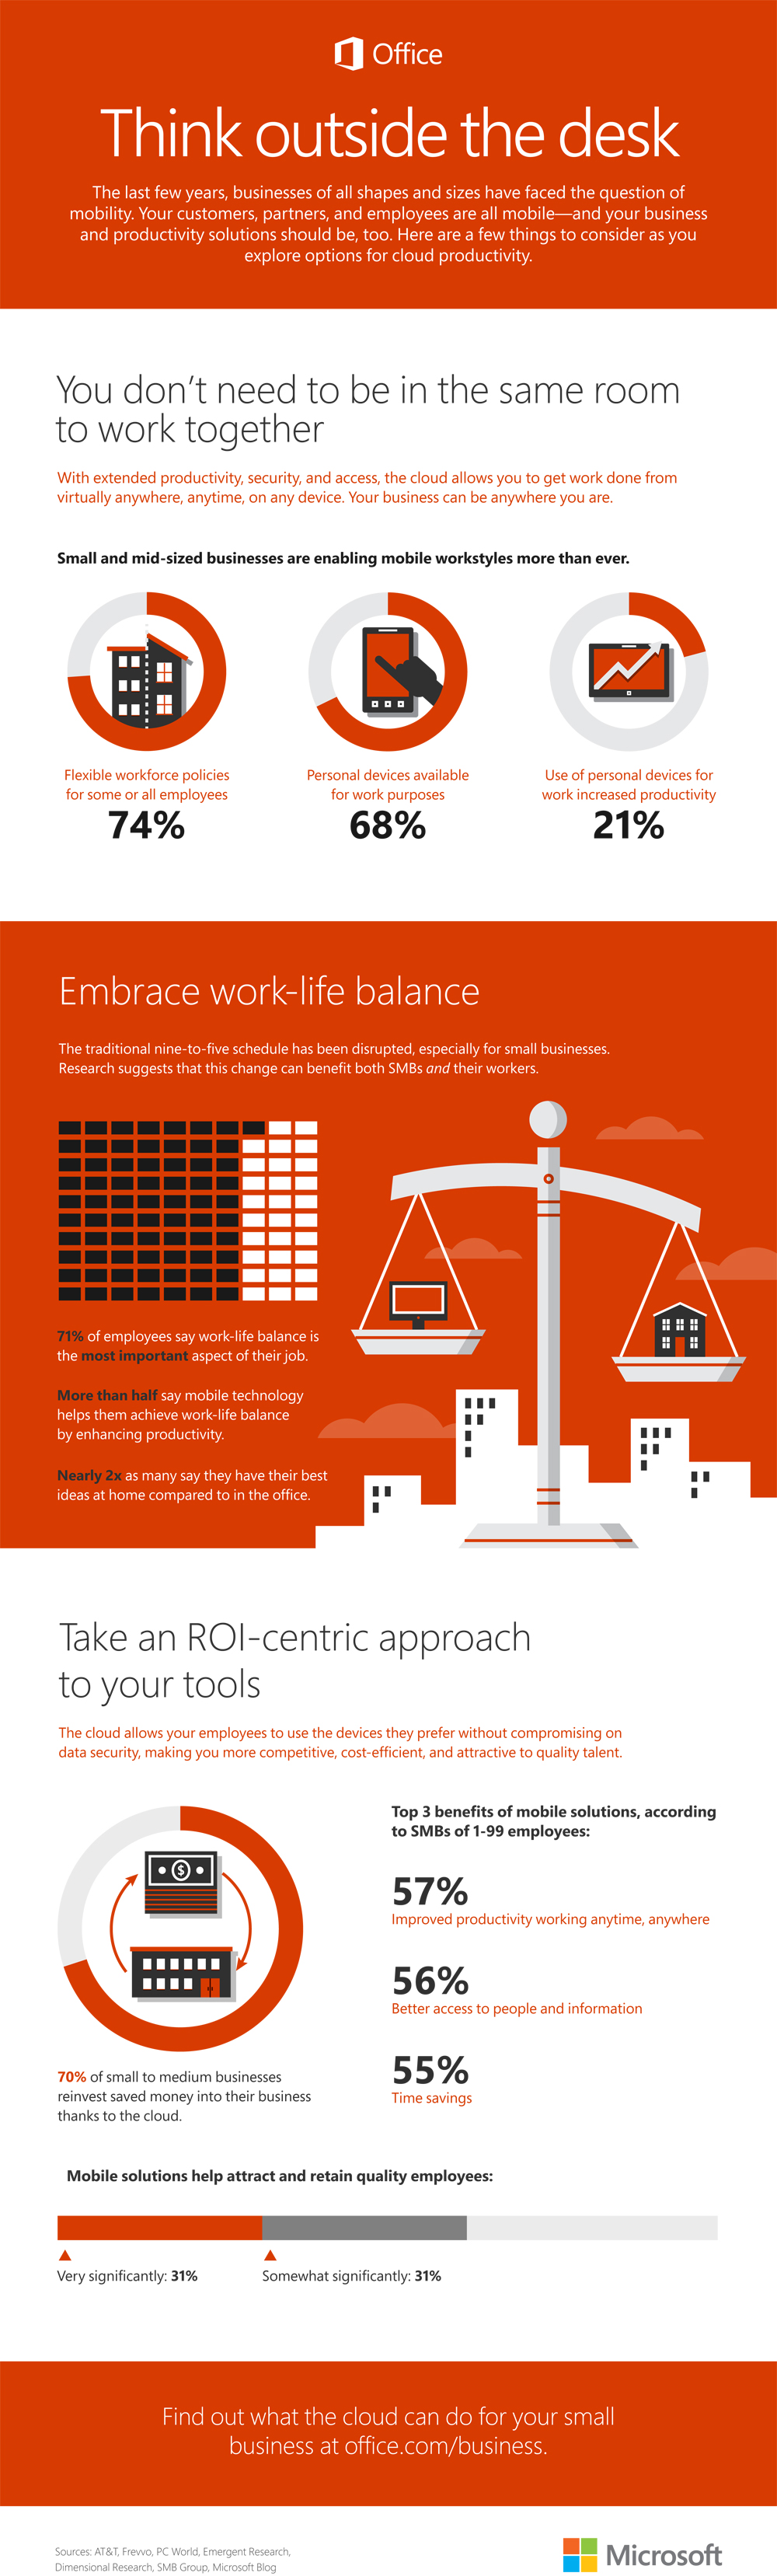 Think outside the desk - infographic